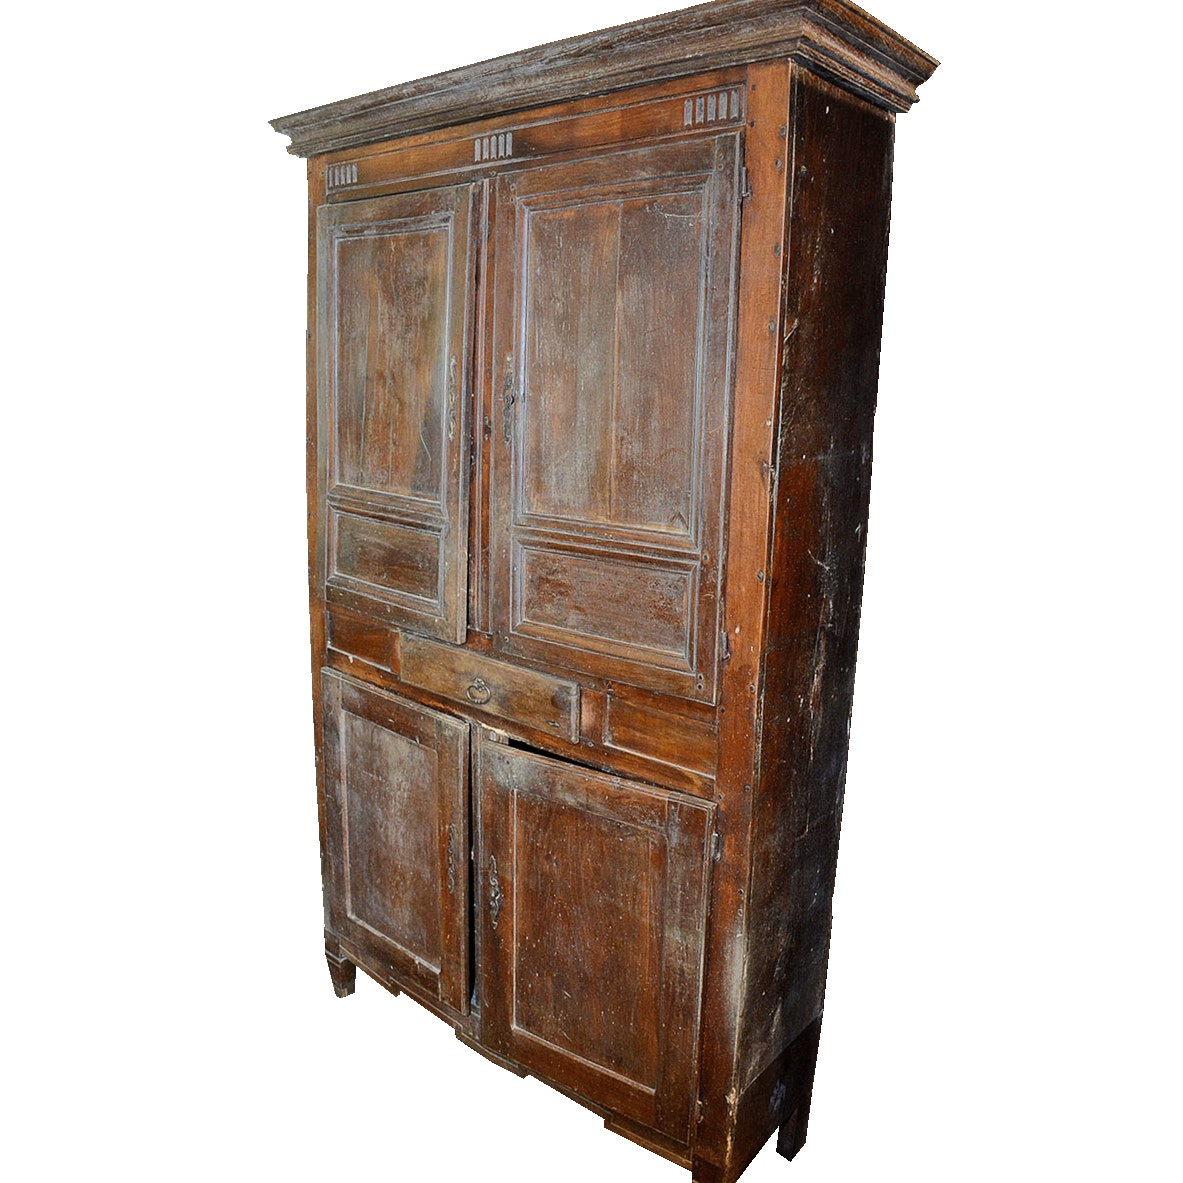 Antique Eastlake Inspired Mahogany Cabinet